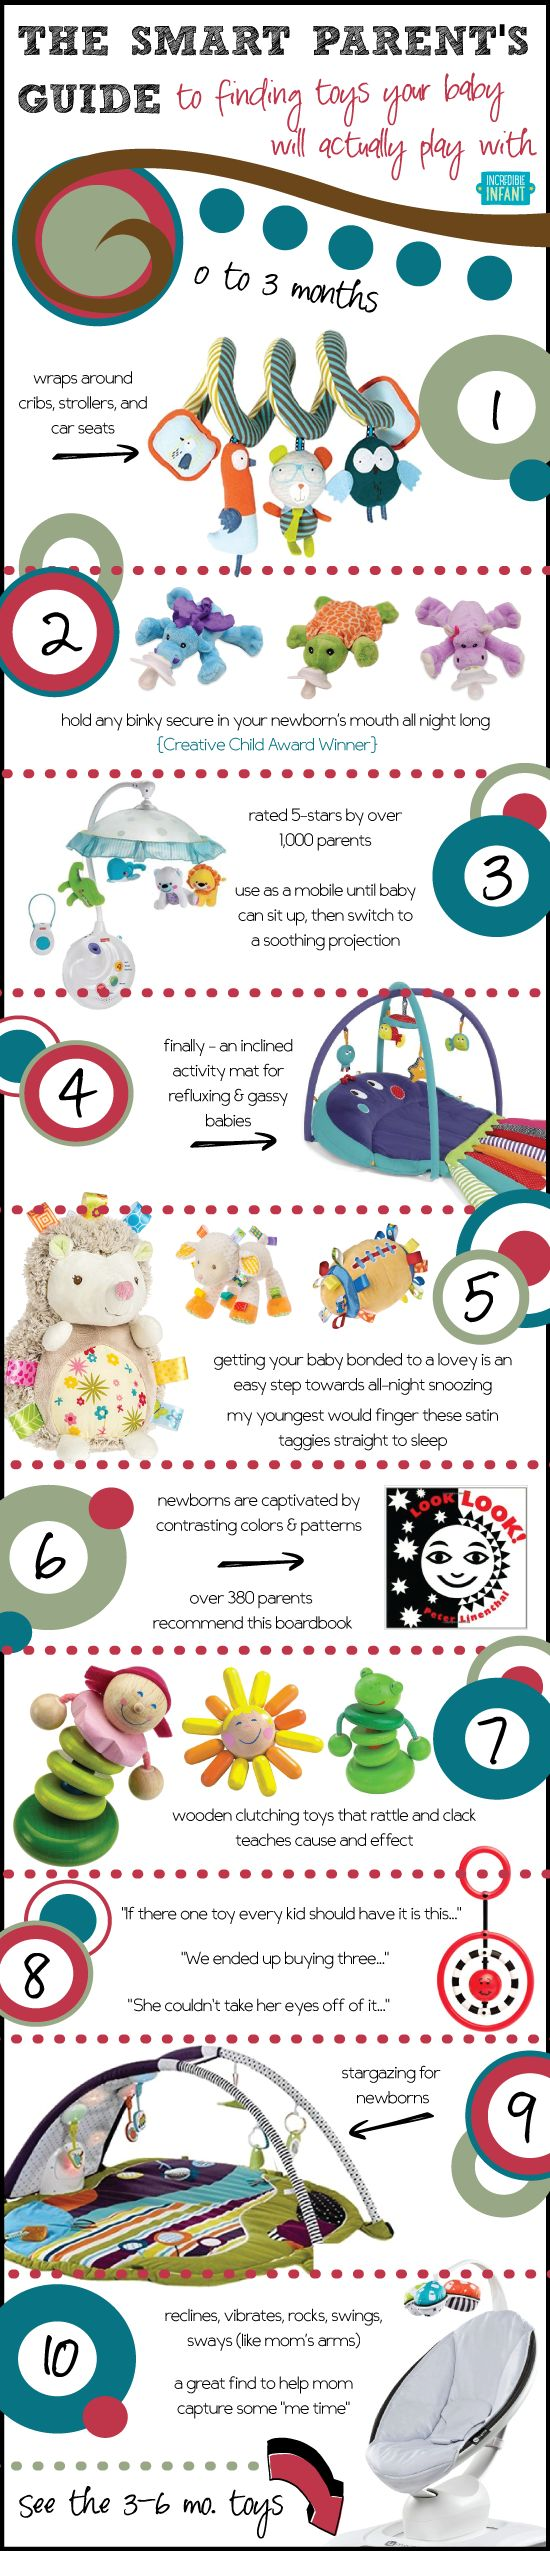 Christmas Gifts For 10 Month Old Part - 18: Top 10 Smart Baby Toys For 0-3 Month Olds - Http://